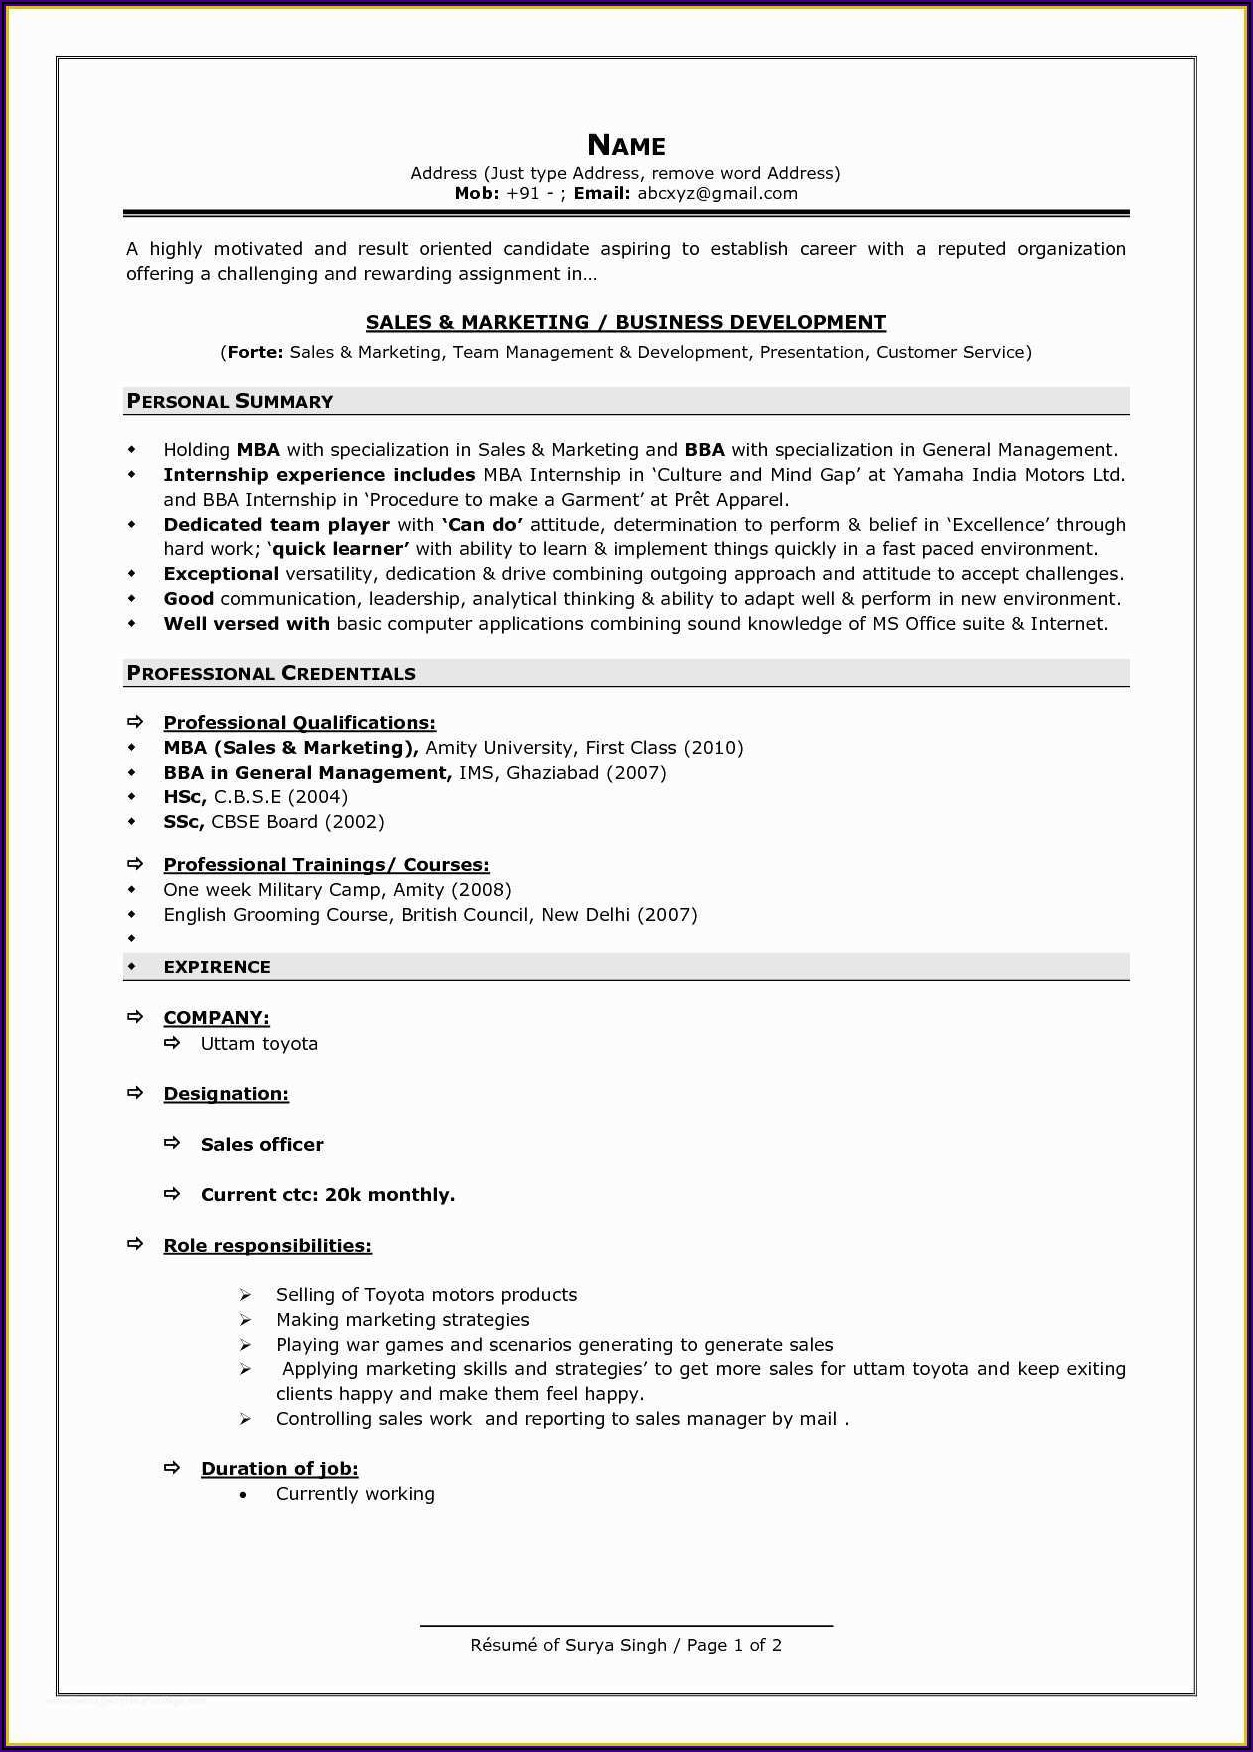 Free Resume Format Download In Ms Word